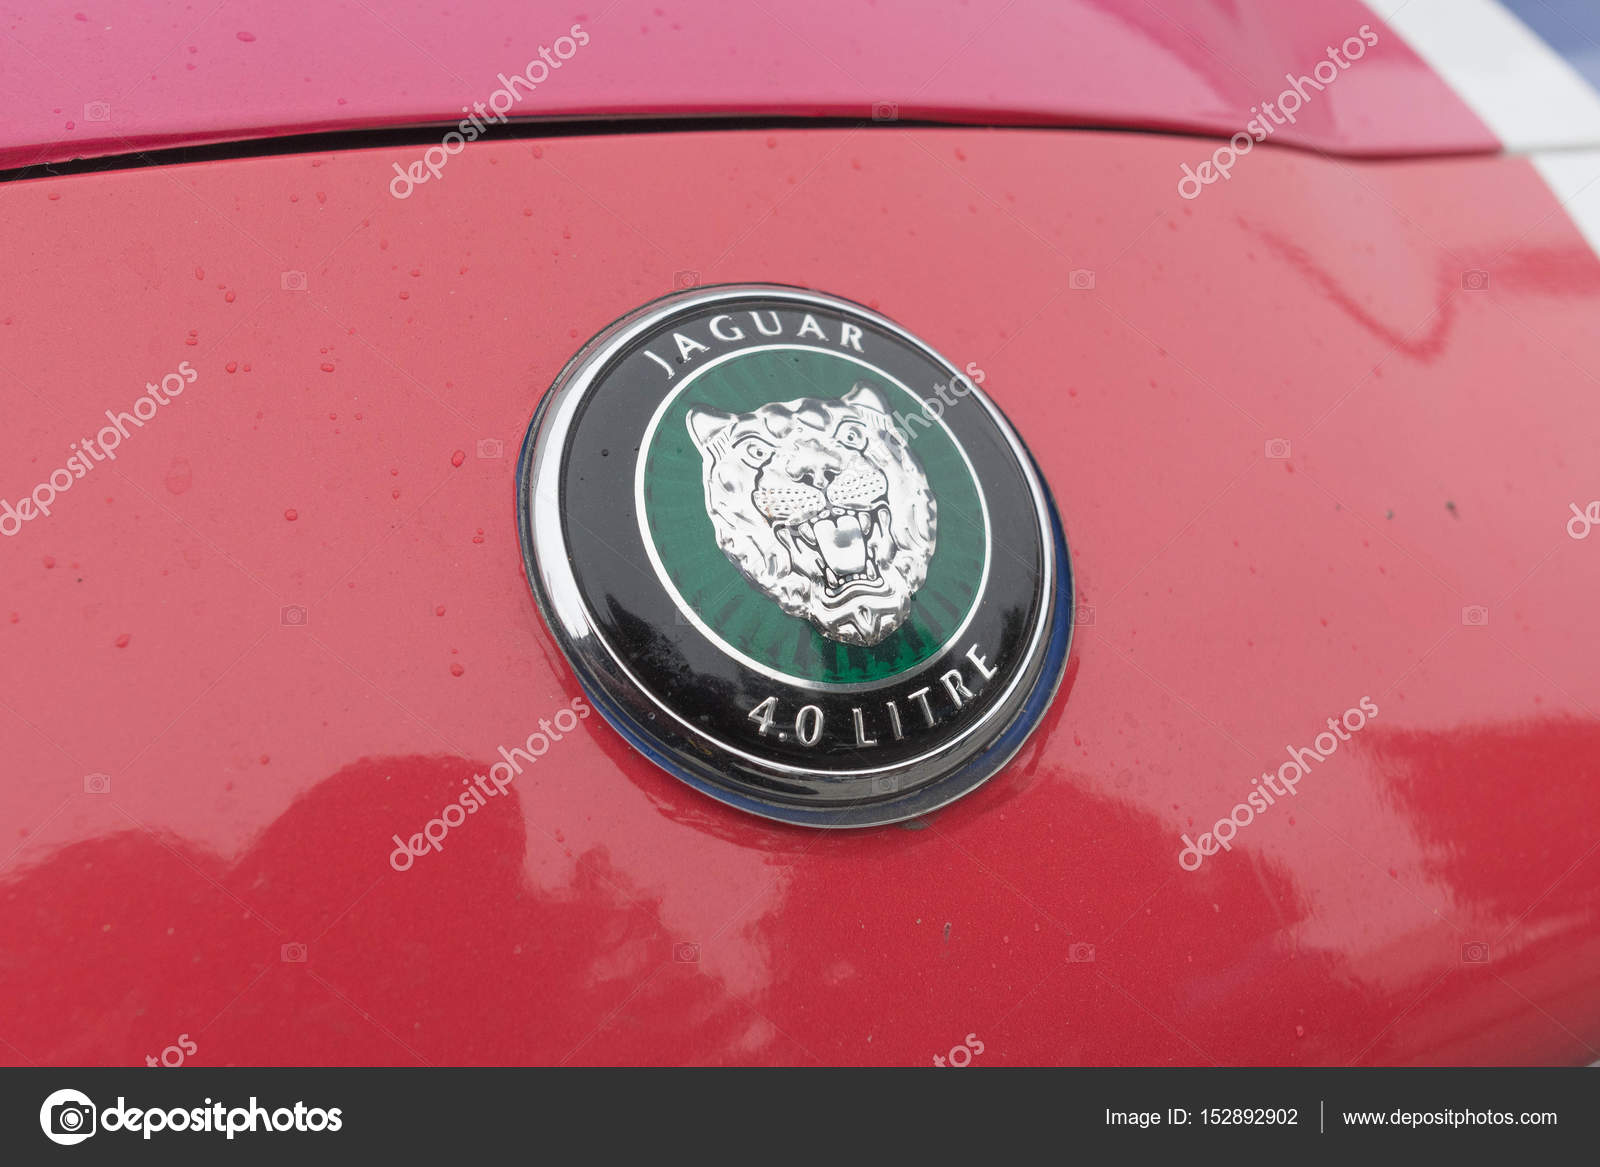 Jaguar emblem on display stock editorial photo bettorodrigues jaguar emblem on display stock photo biocorpaavc Gallery